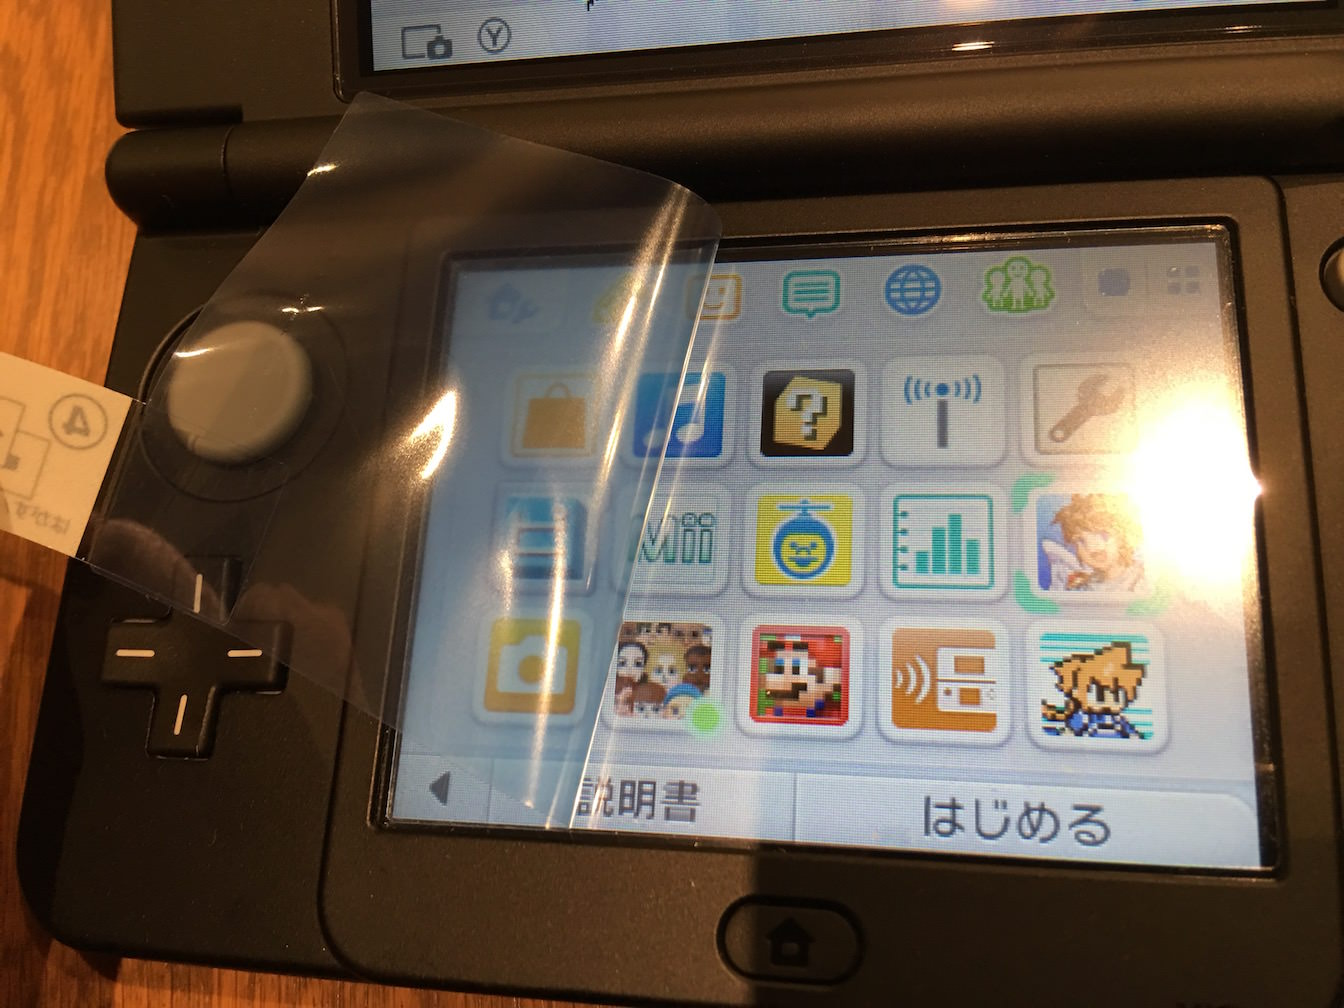 Review of zero pita filter for new nintendo 3ds 13